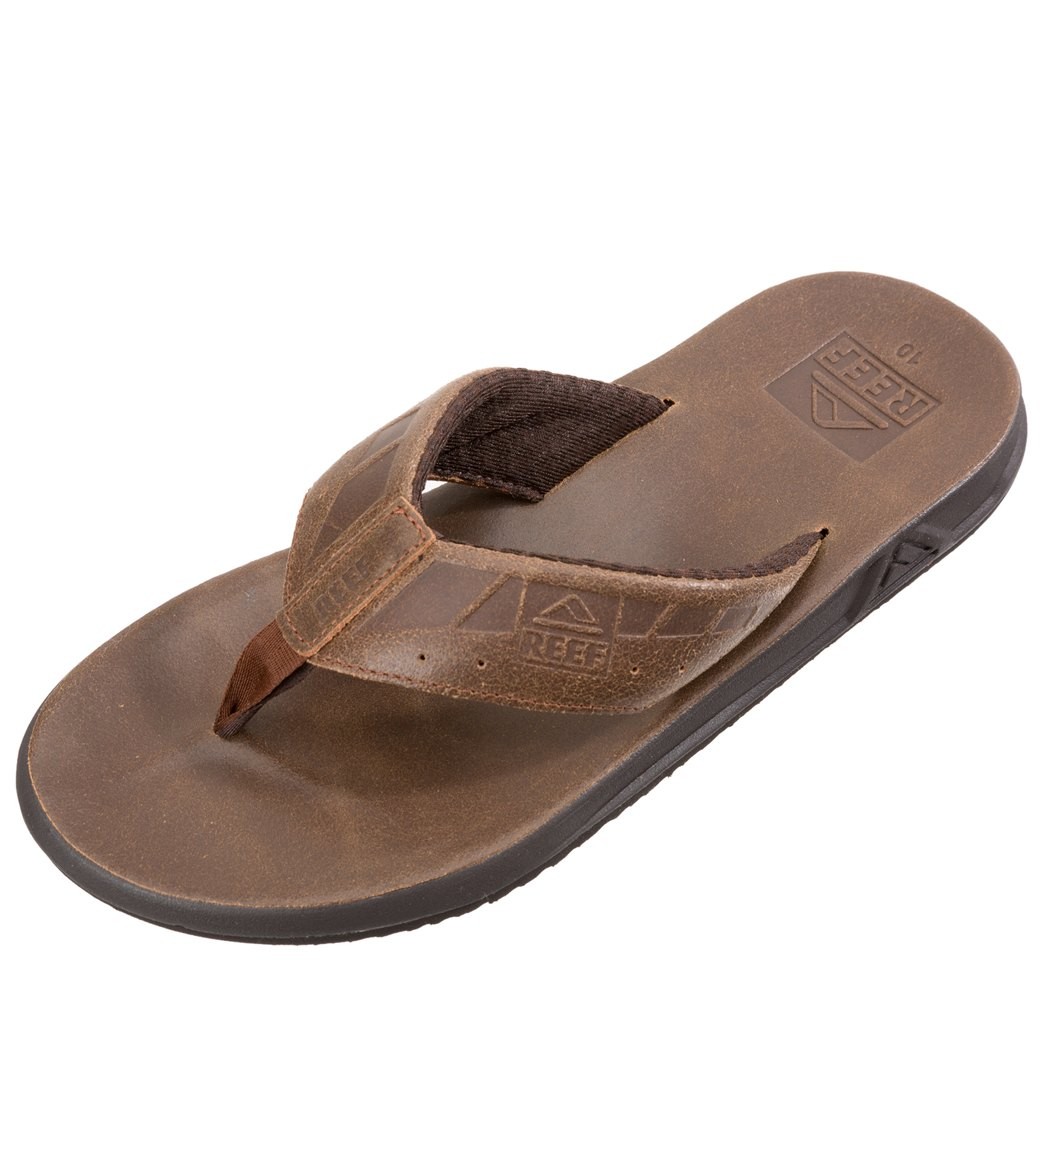 cb0cb792bf3f Reef Men s Phantom Ultimate Flip Flop at SwimOutlet.com - Free ...